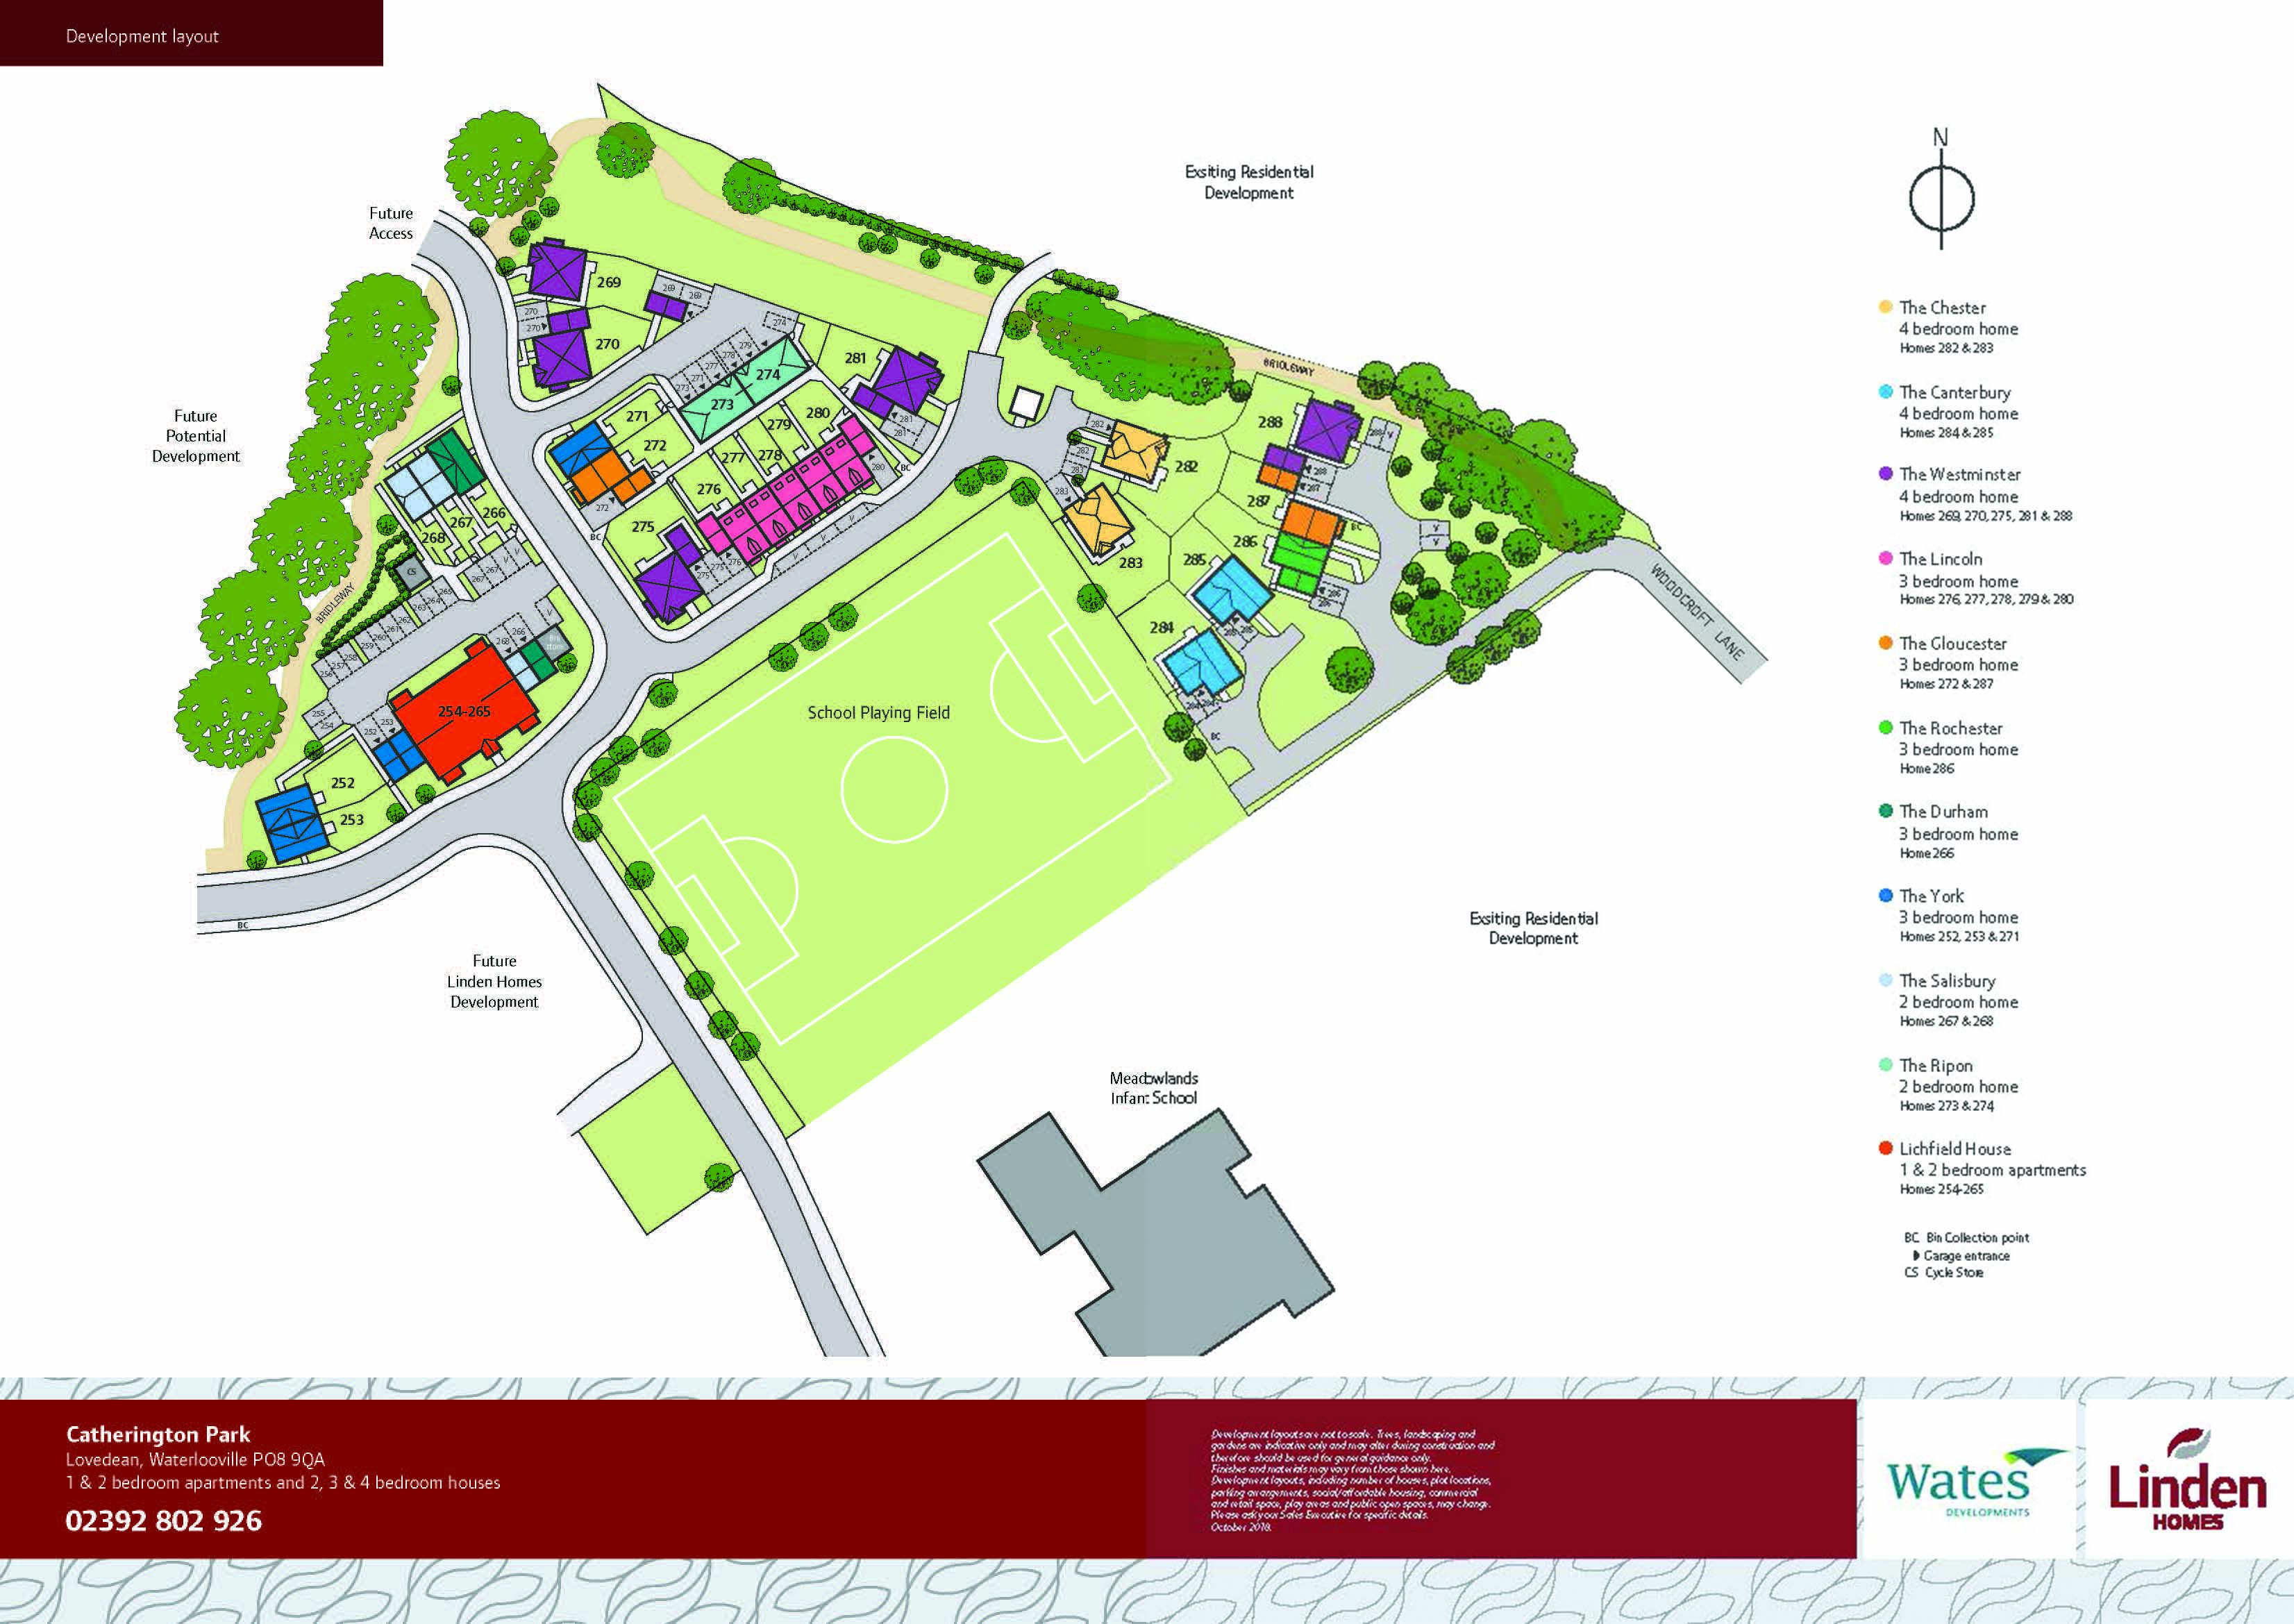 Catherington Park Site Map